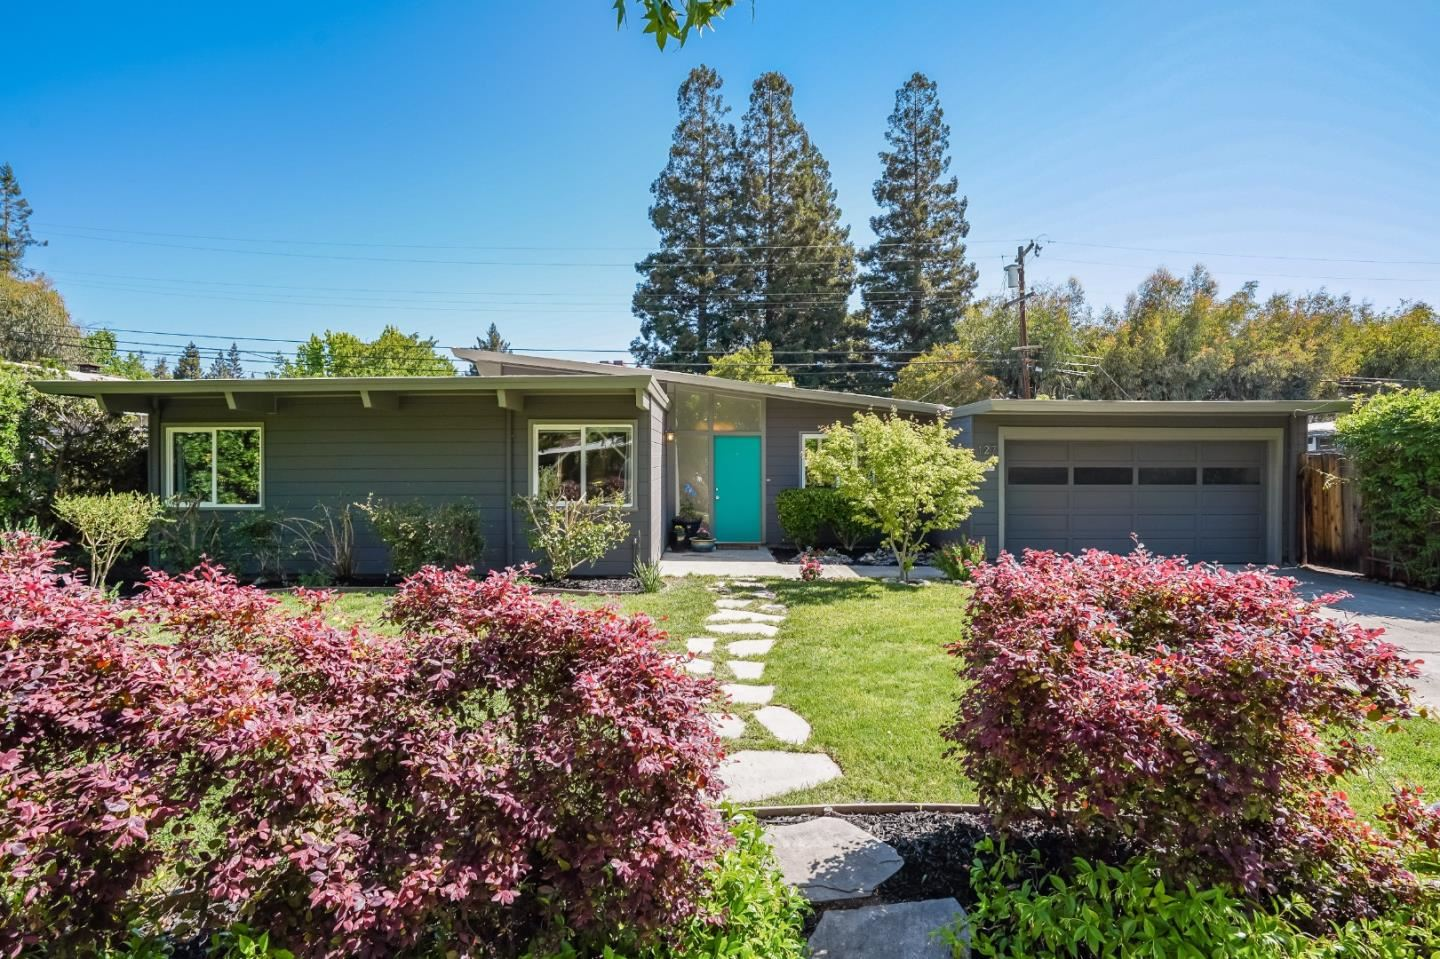 127 Atherwood Avenue, Redwood City, CA 94061 - #: ML81843557